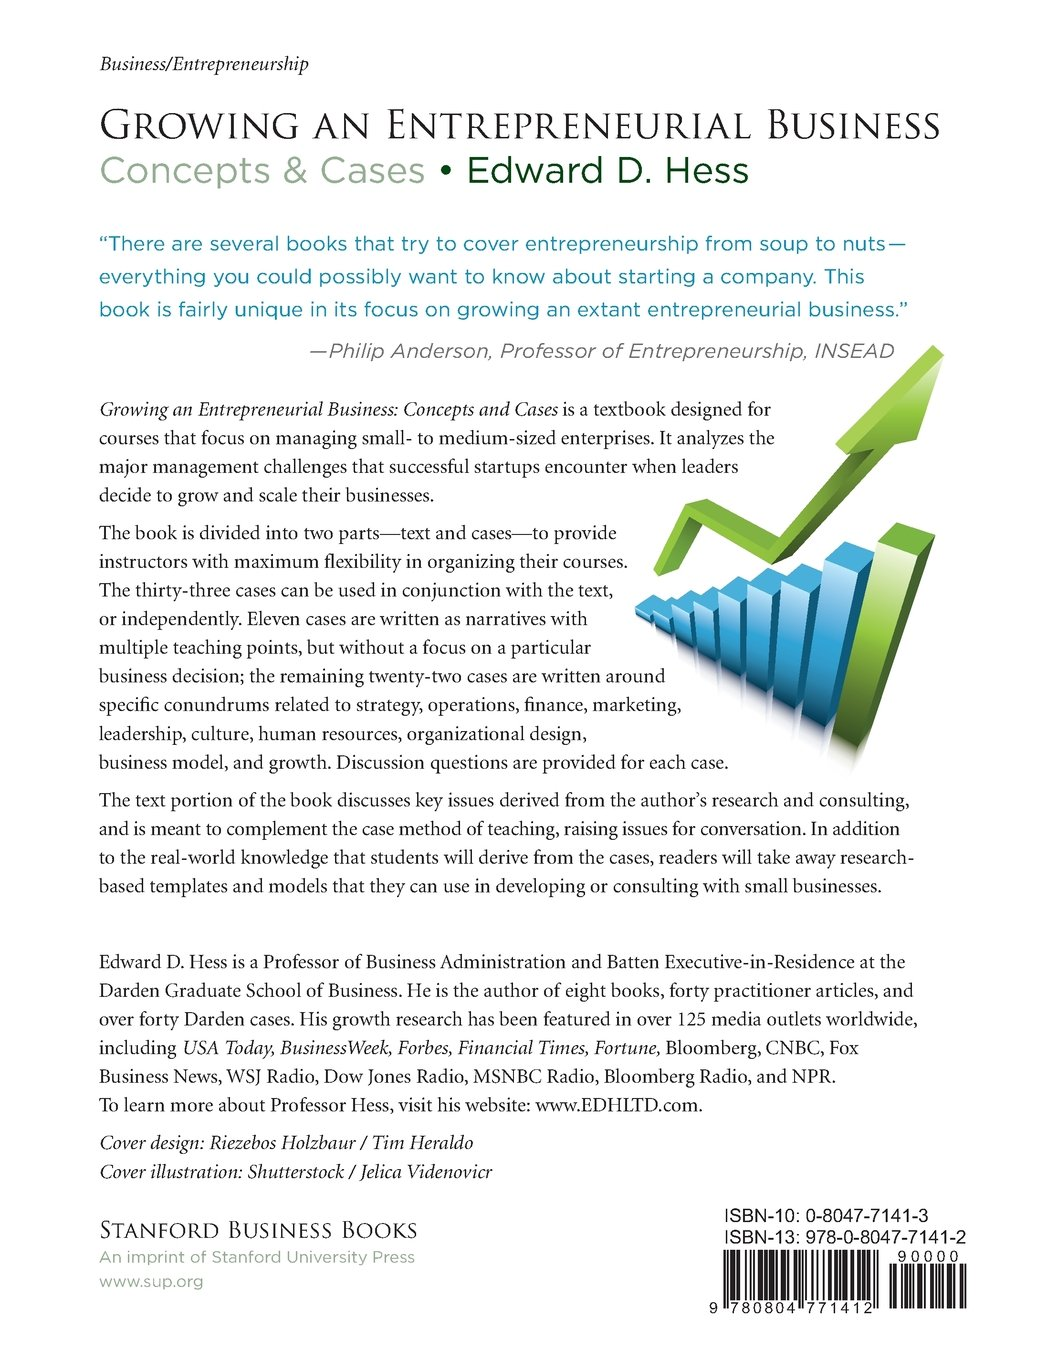 Growing An Entrepreneurial Business: Concepts U0026 Cases: Edward D. Hess:  9780804771412: Amazon.com: Books